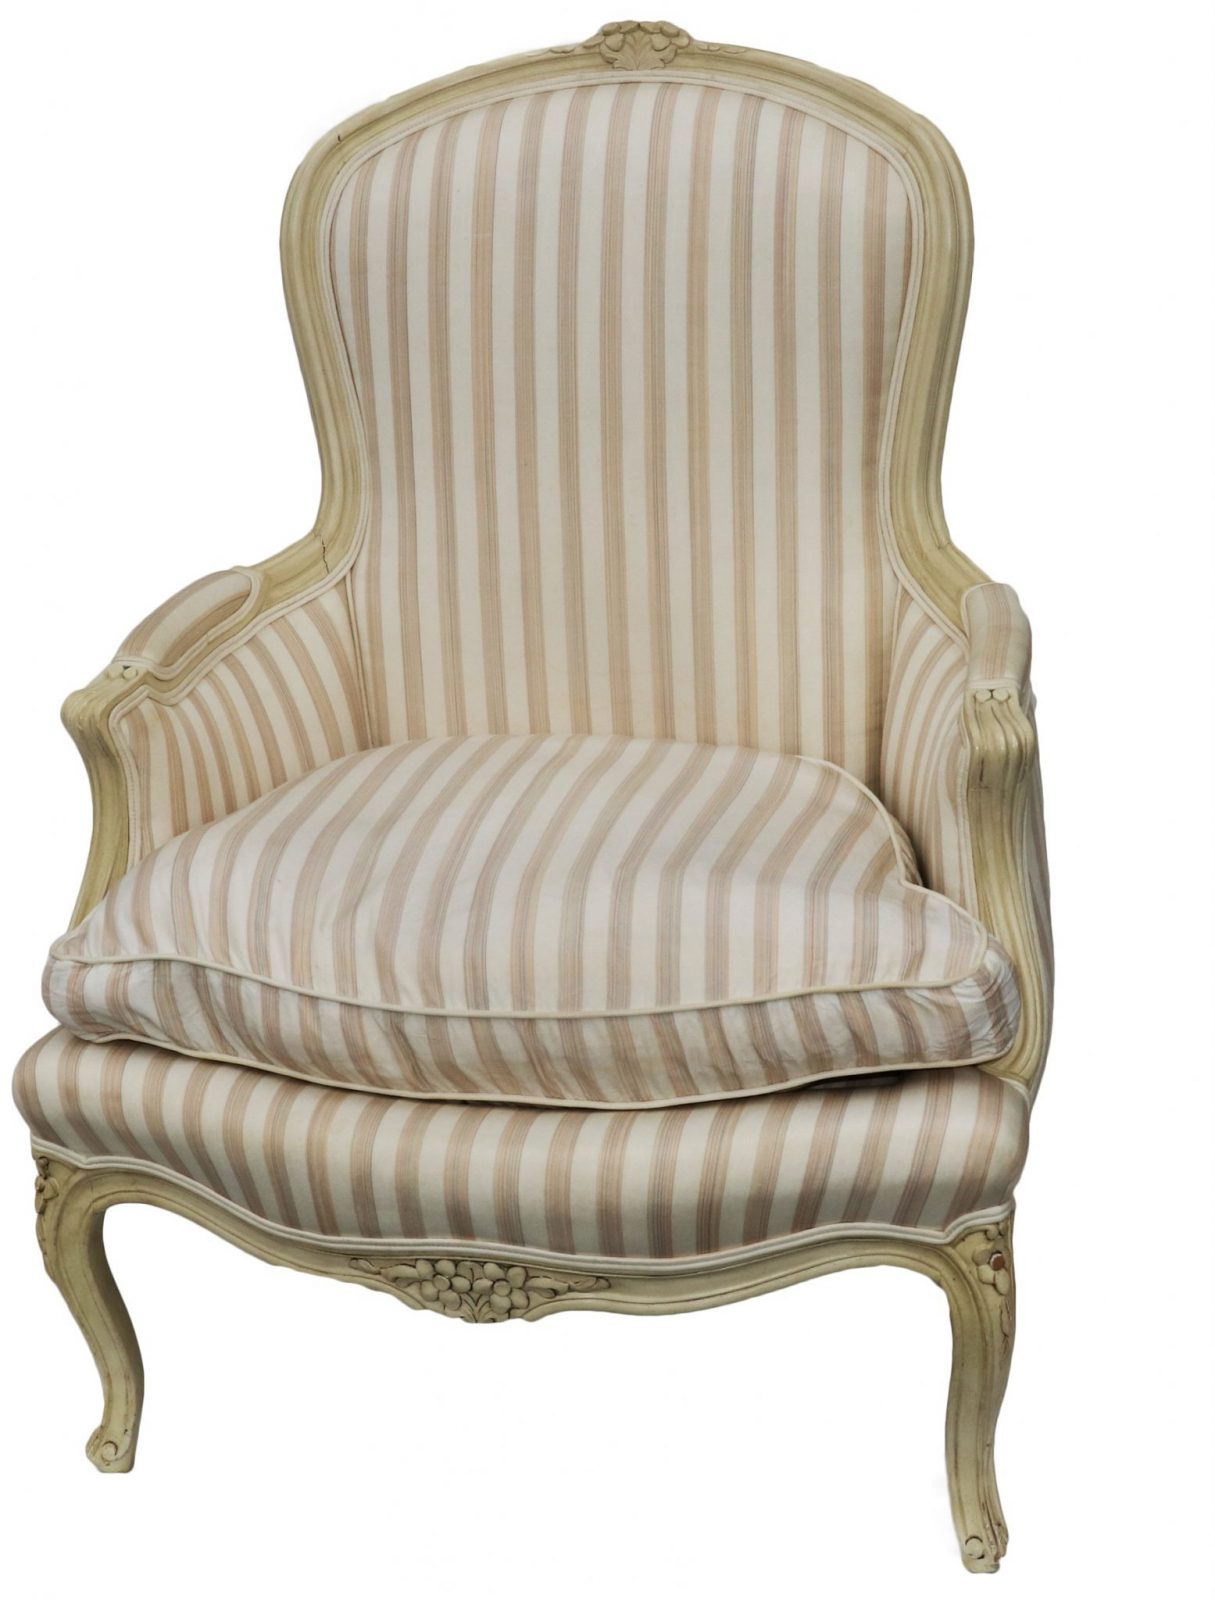 John Widdicomb French Style upholstered chair